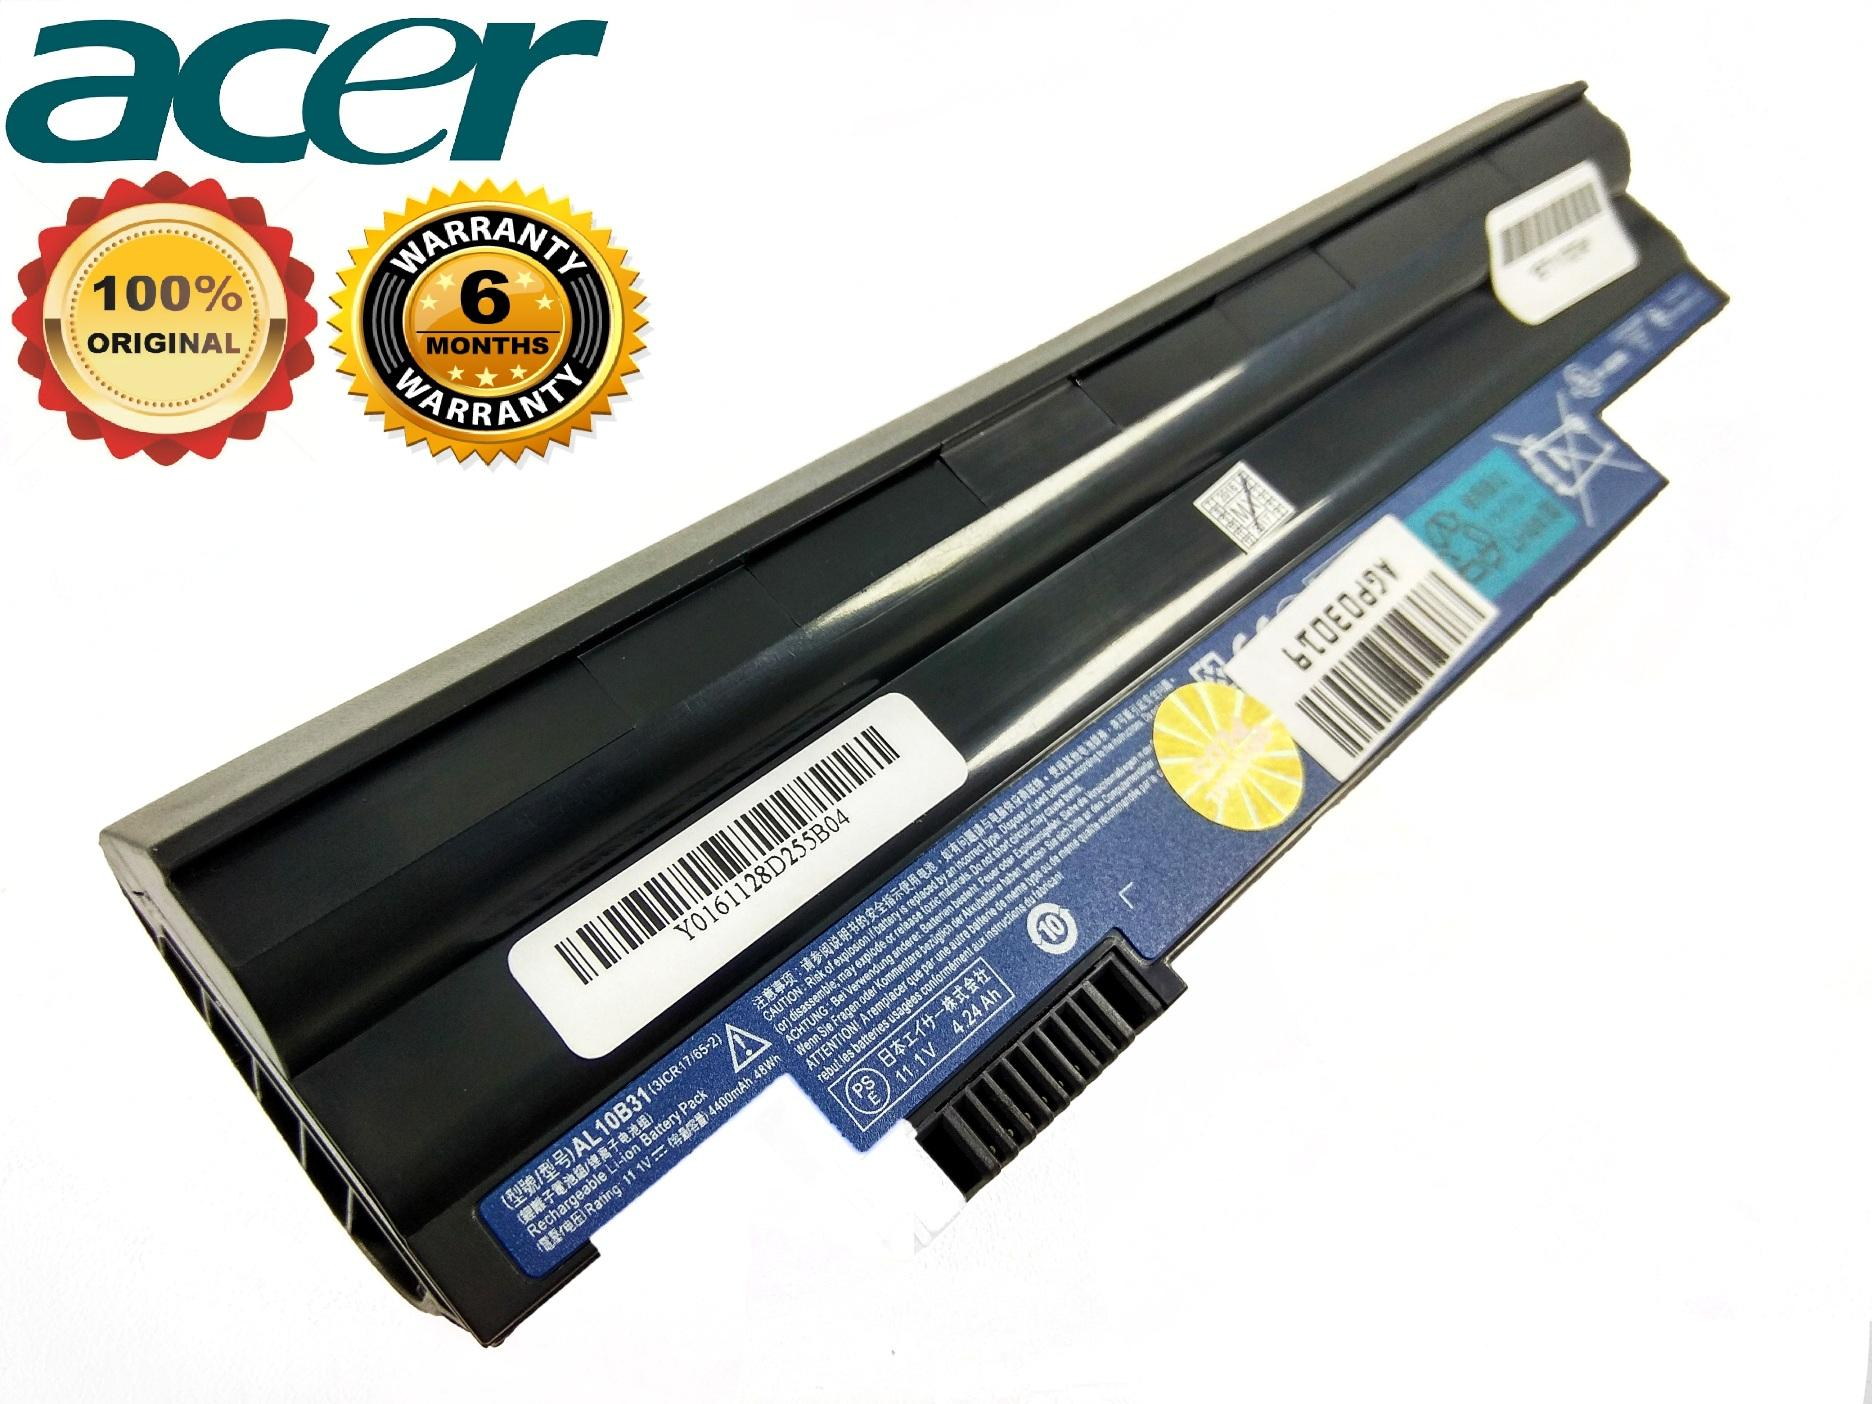 Baterai Acer Aspire One Original 722 522 D255 D260 D257 Black ORI